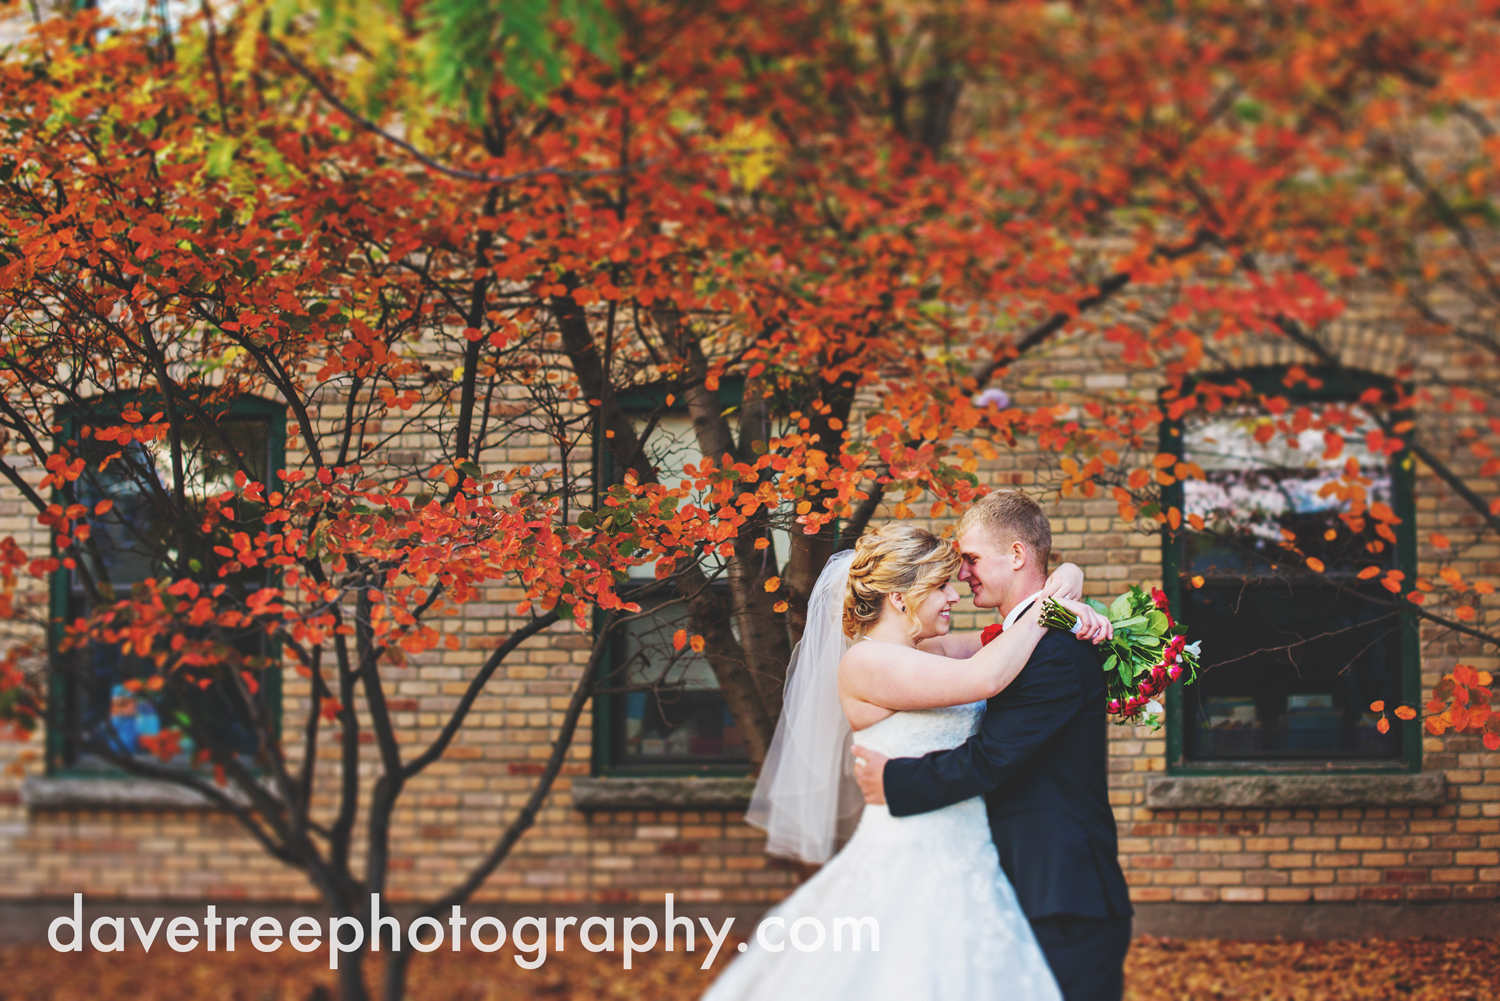 holland_wedding_photographer_11.jpg